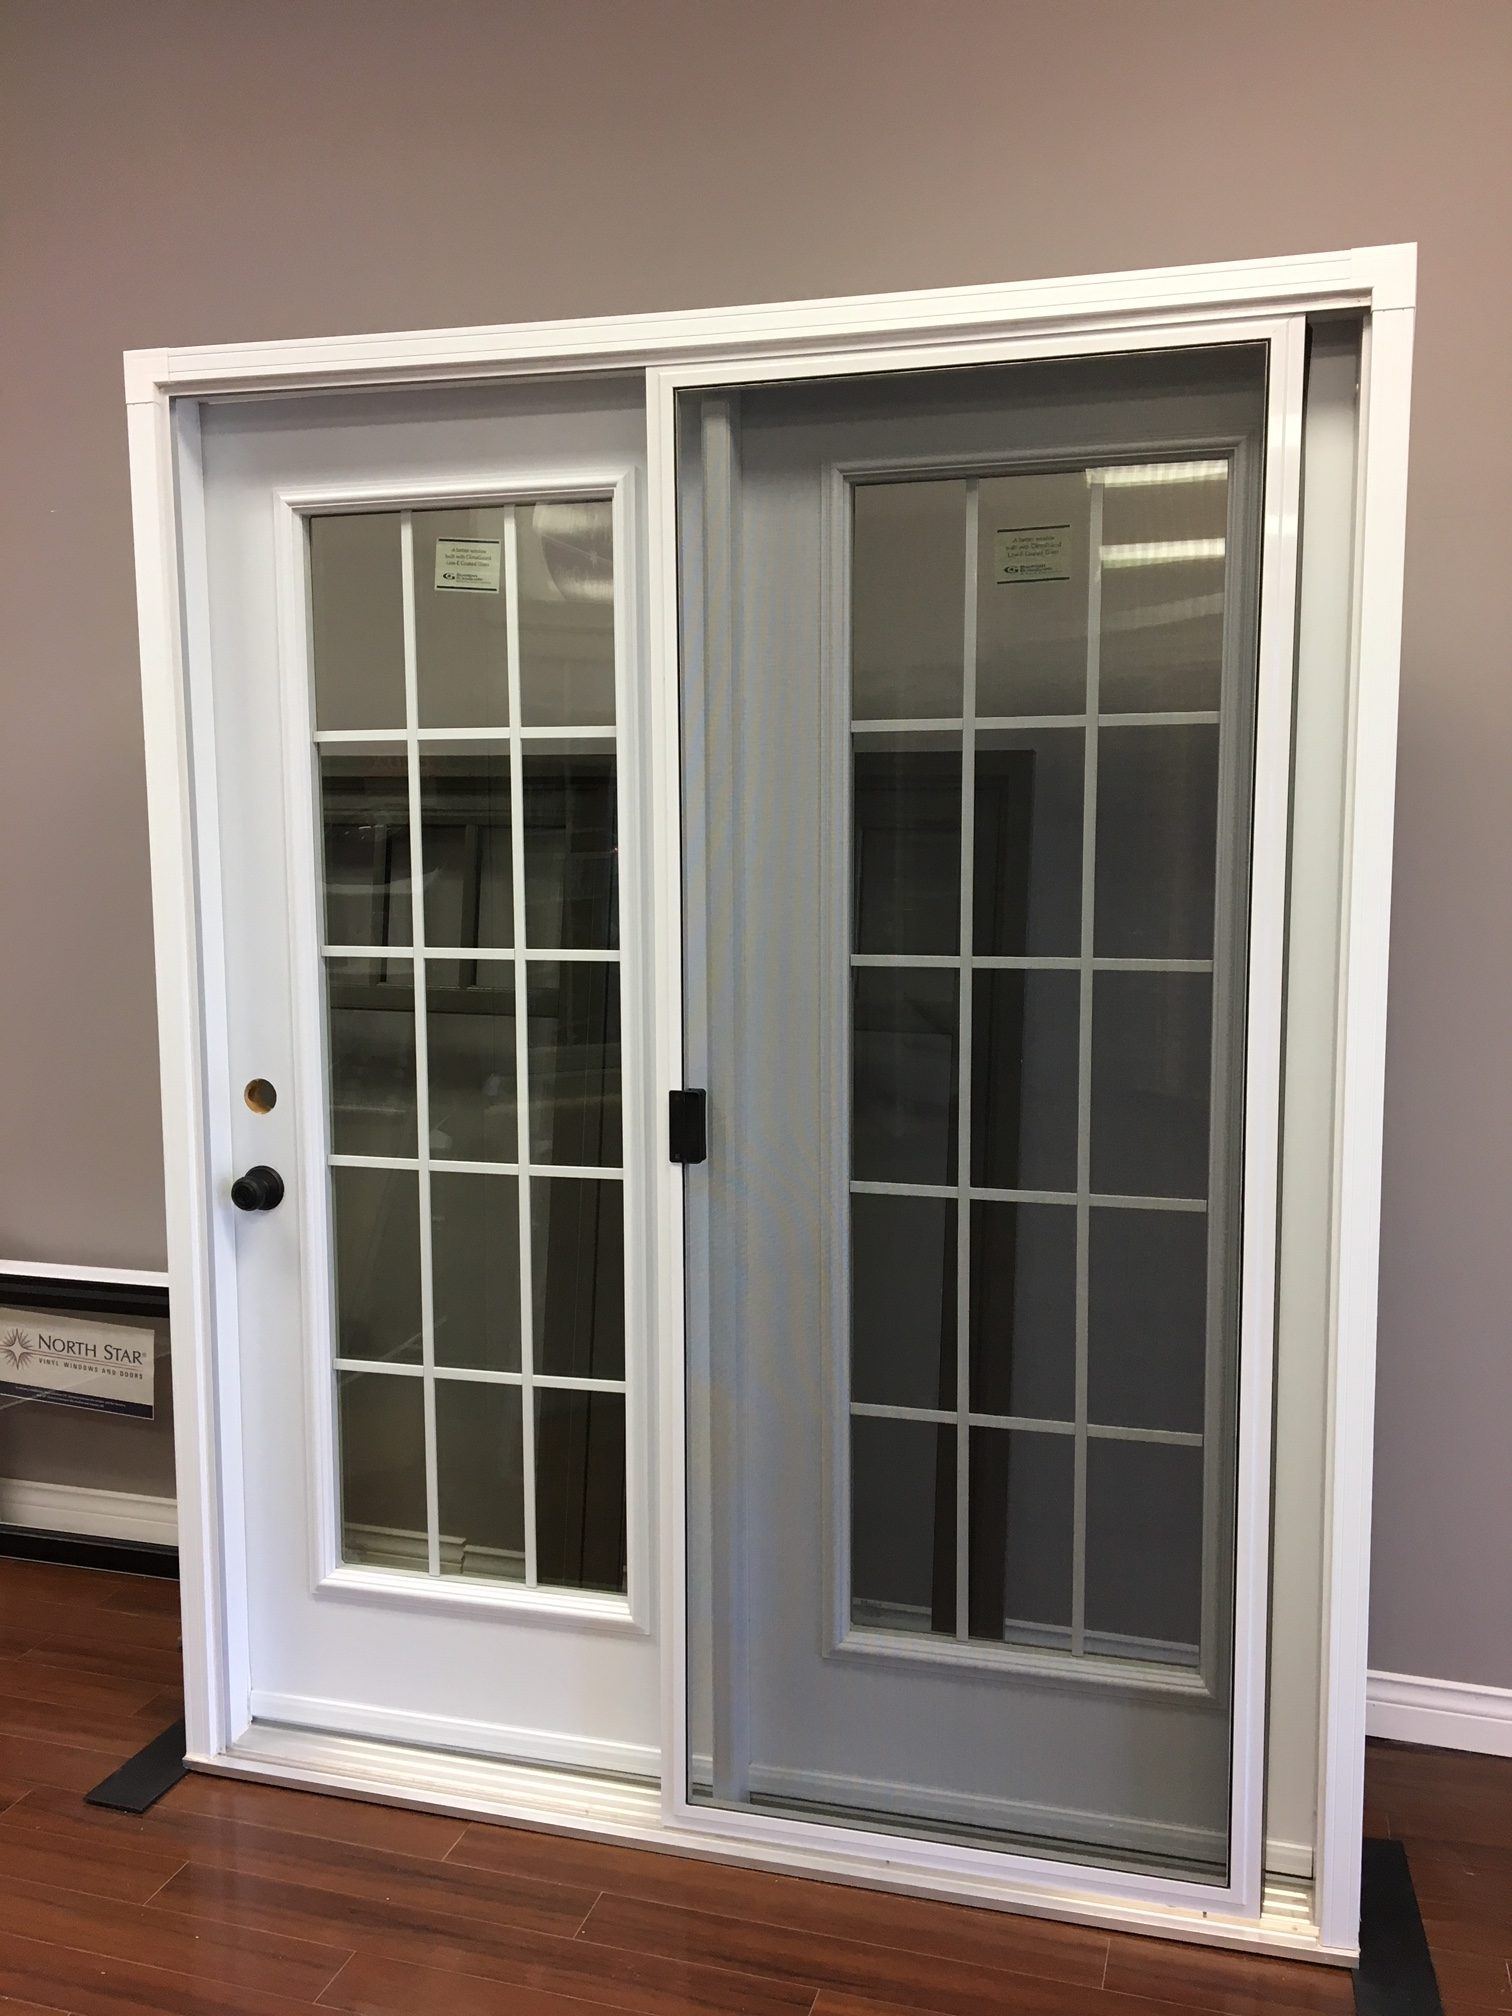 34u2033 Door With Decorative Glass And Sidelite  $1708.00 + Tax